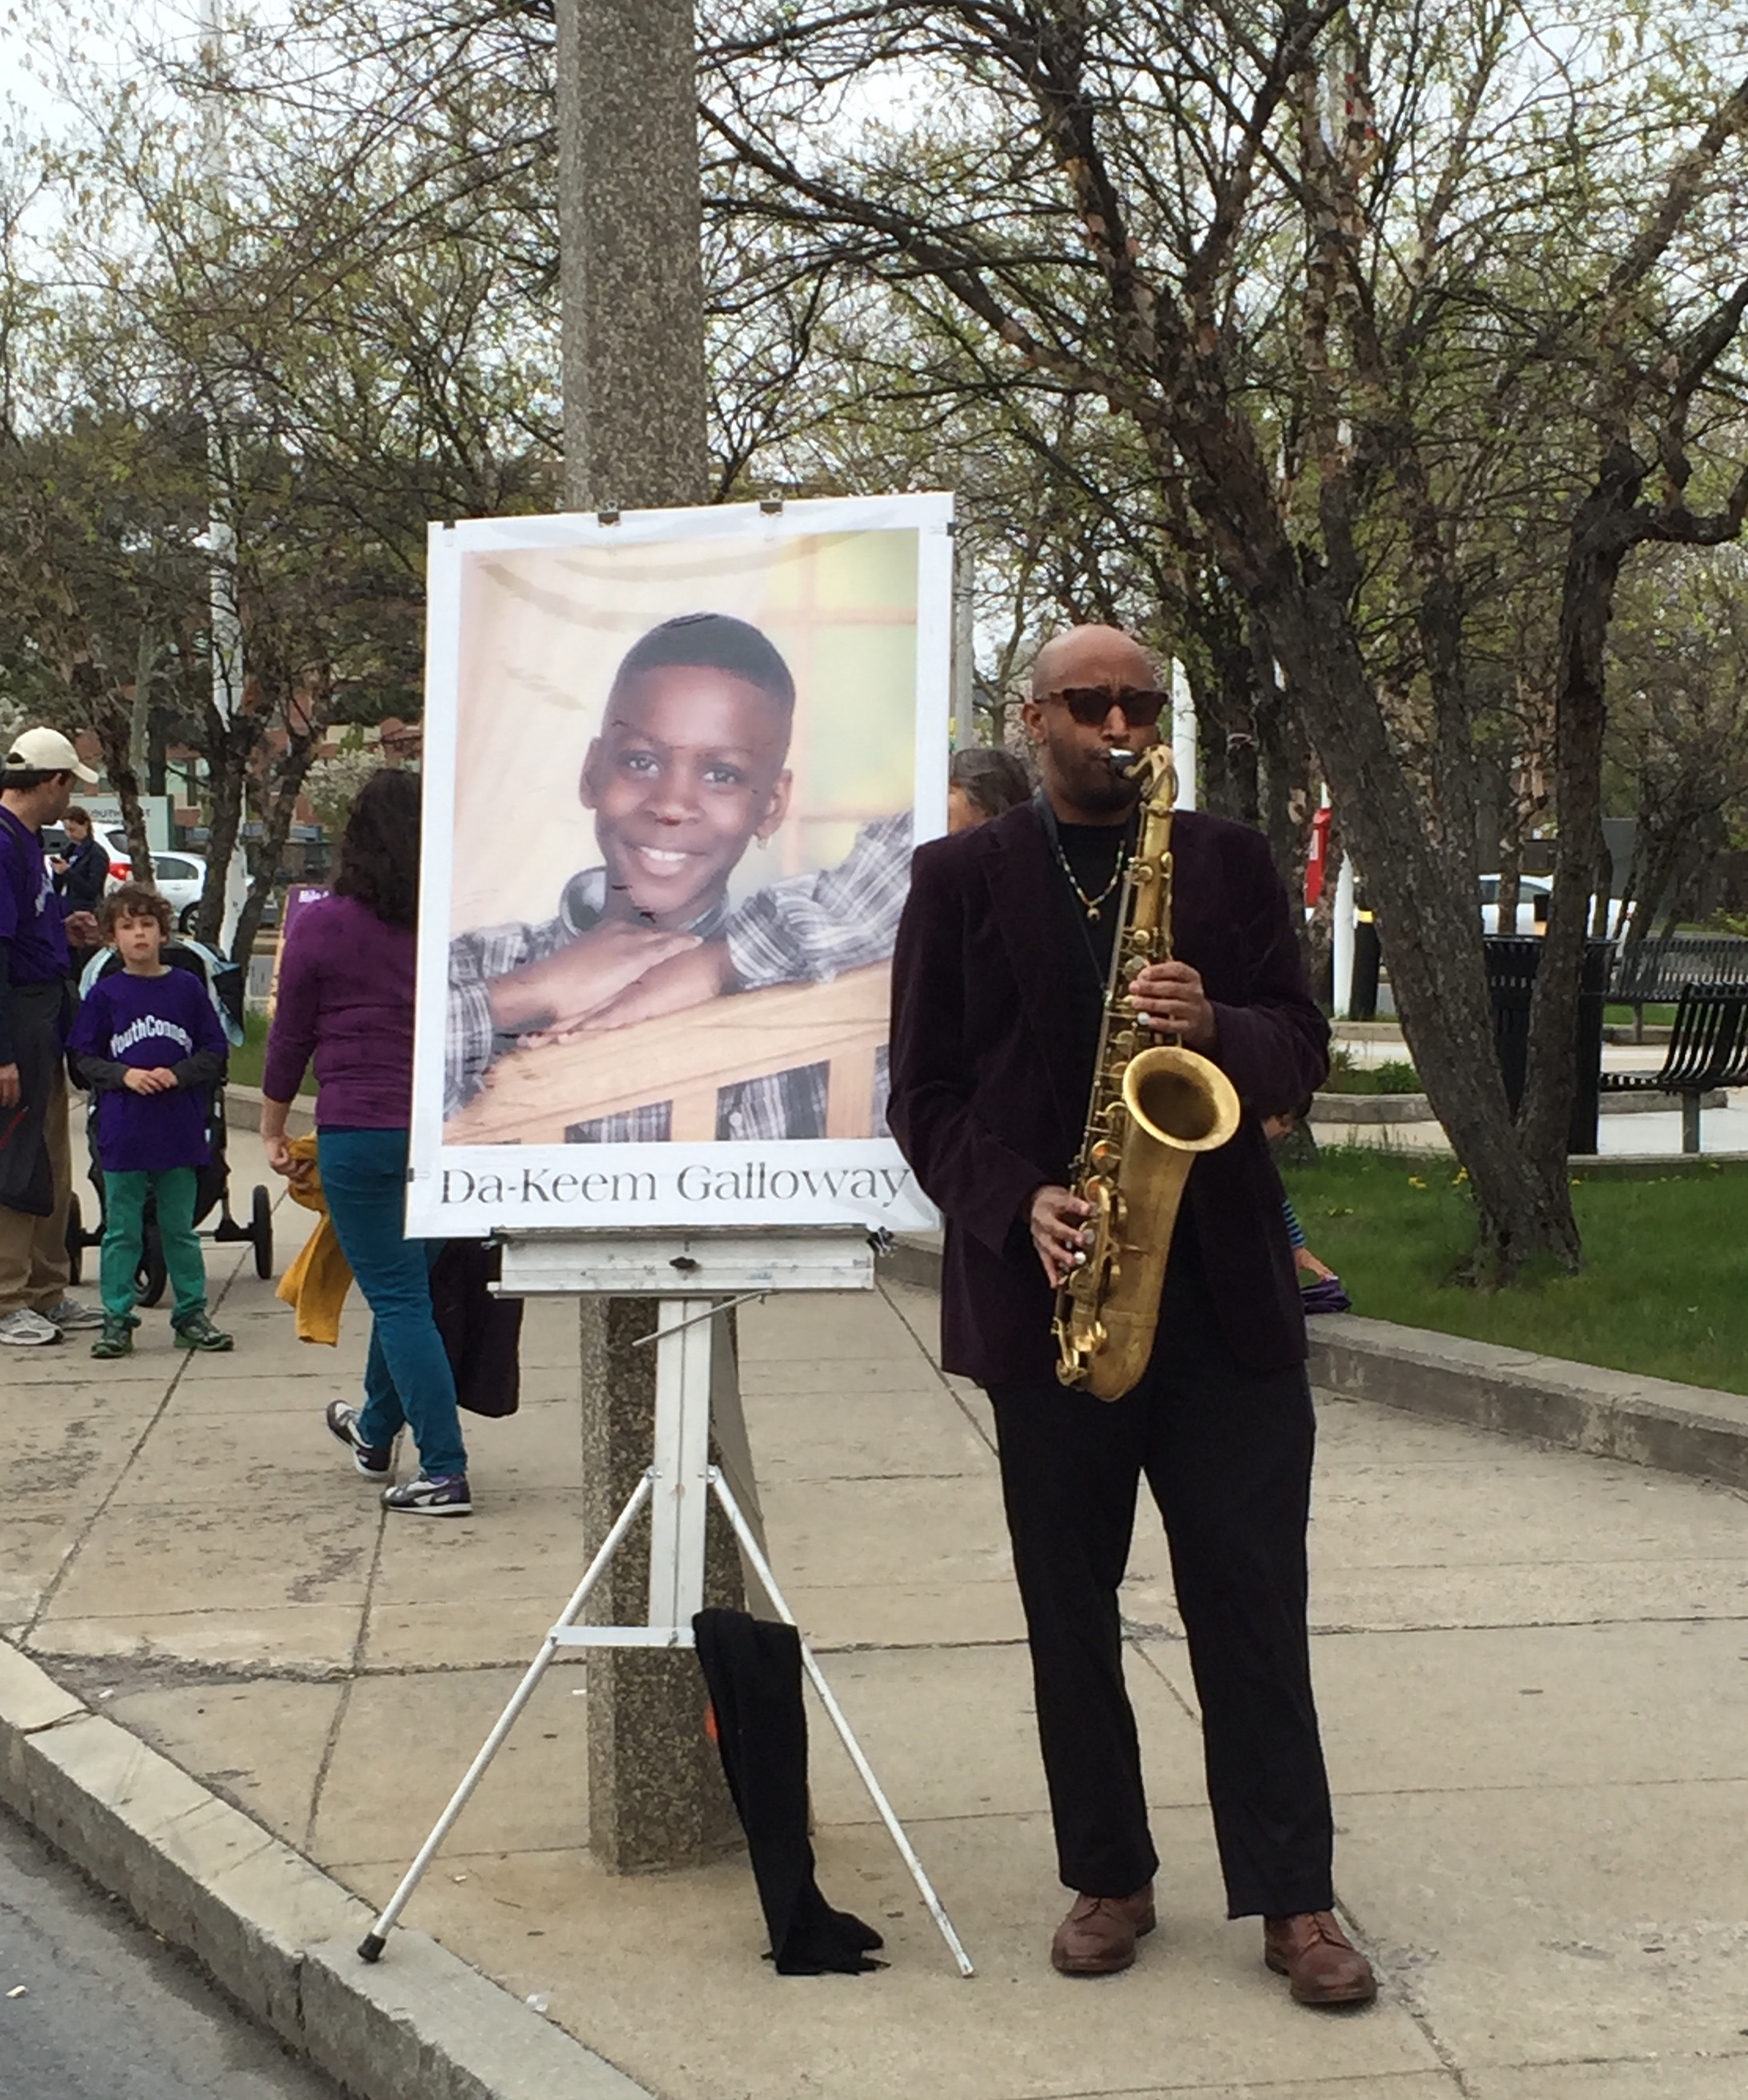 Danny Mekonnen honors Da-Keem Galloway at the 2016 Mother's Day Walk for Peace